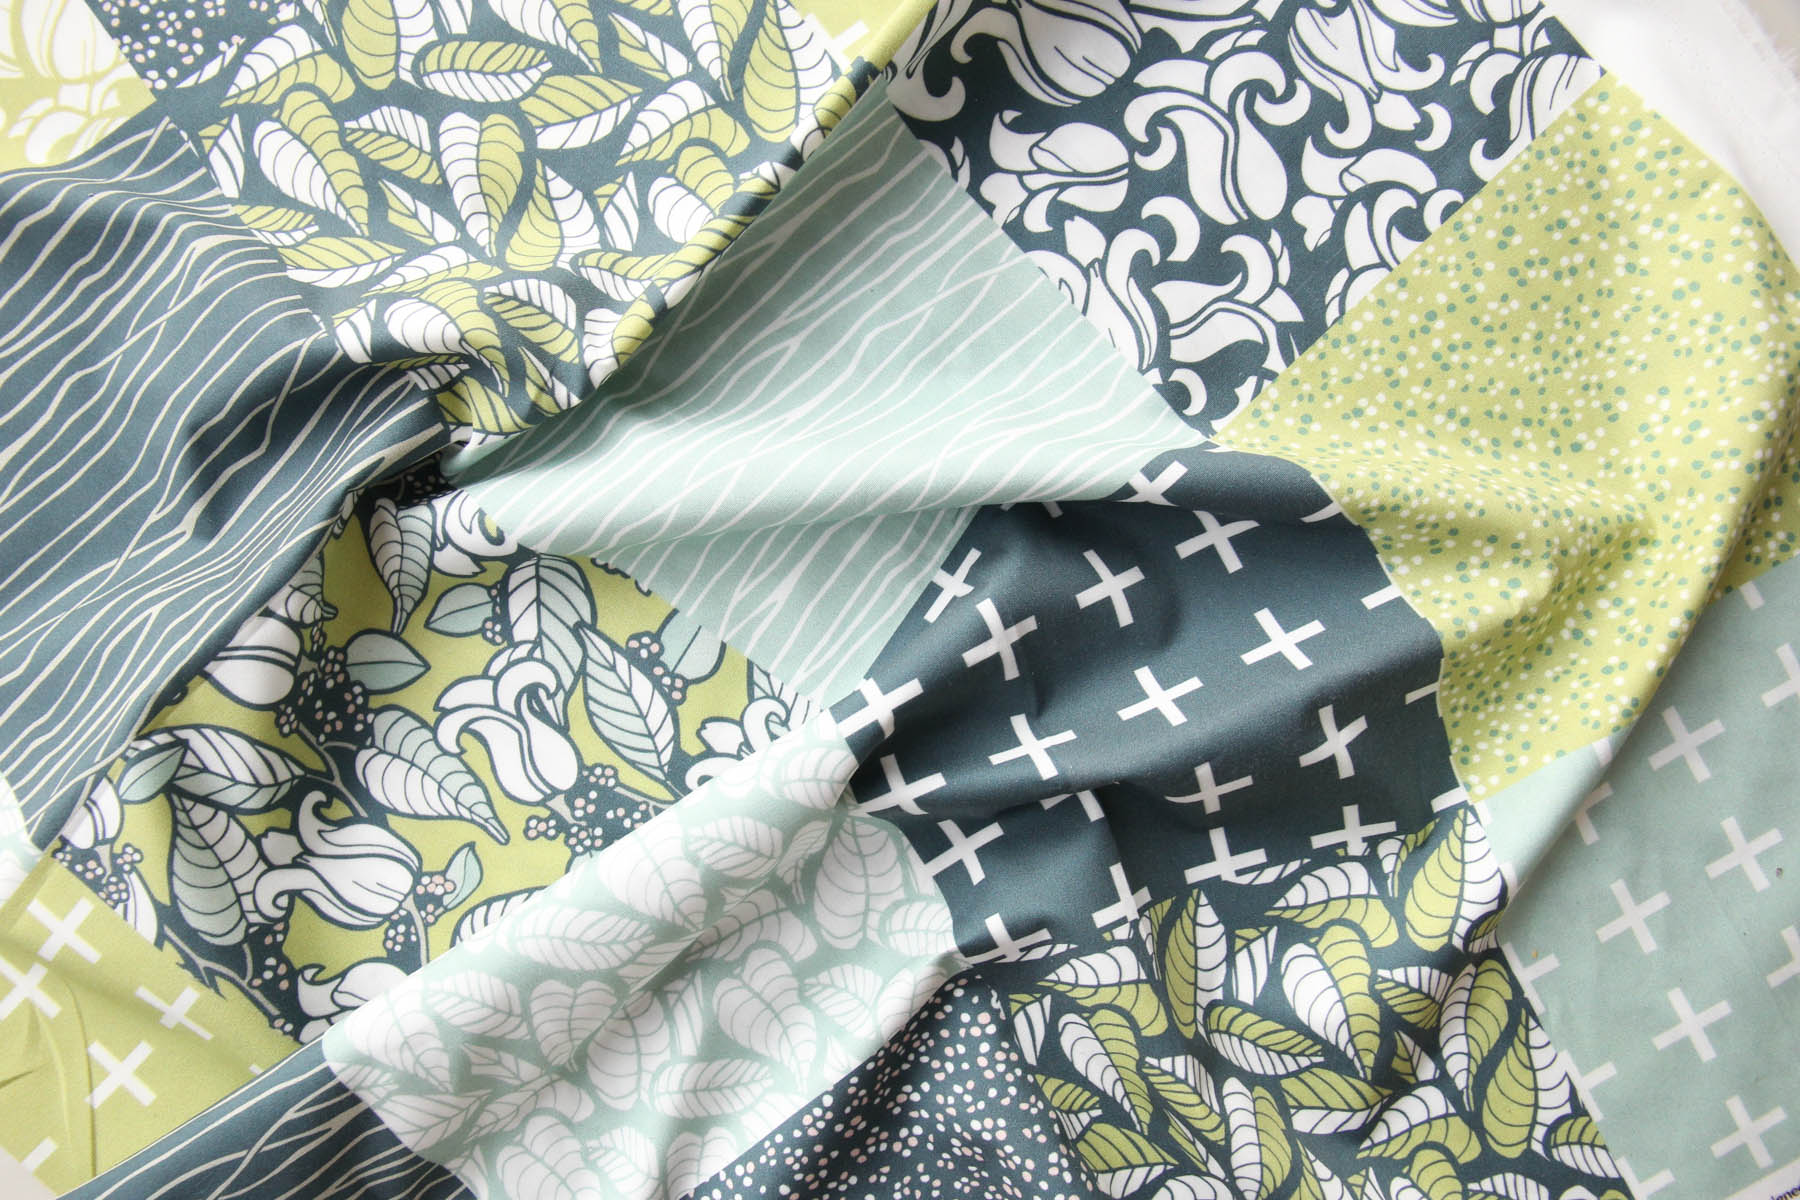 Magnolia Branches: A Surface Pattern Collection, Fabric Design by Jessie Tyree Jenness for Root & Branch Paper Co.